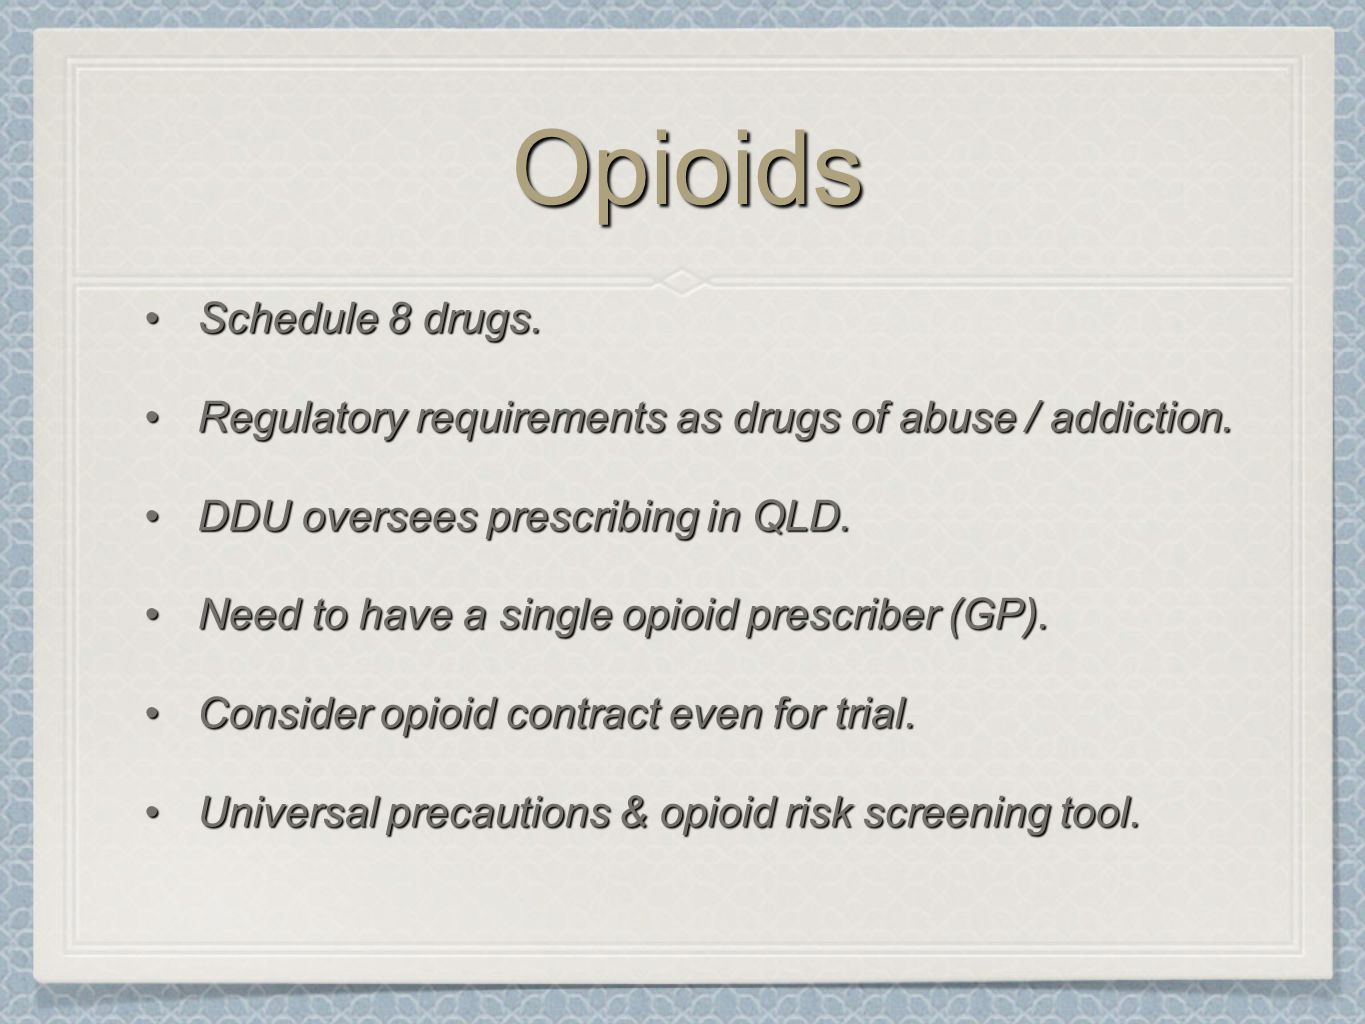 OpioidsOpioids Schedule 8 drugs.Schedule 8 drugs. Regulatory requirements as drugs of abuse / addiction.Regulatory requirements as drugs of abuse / ad